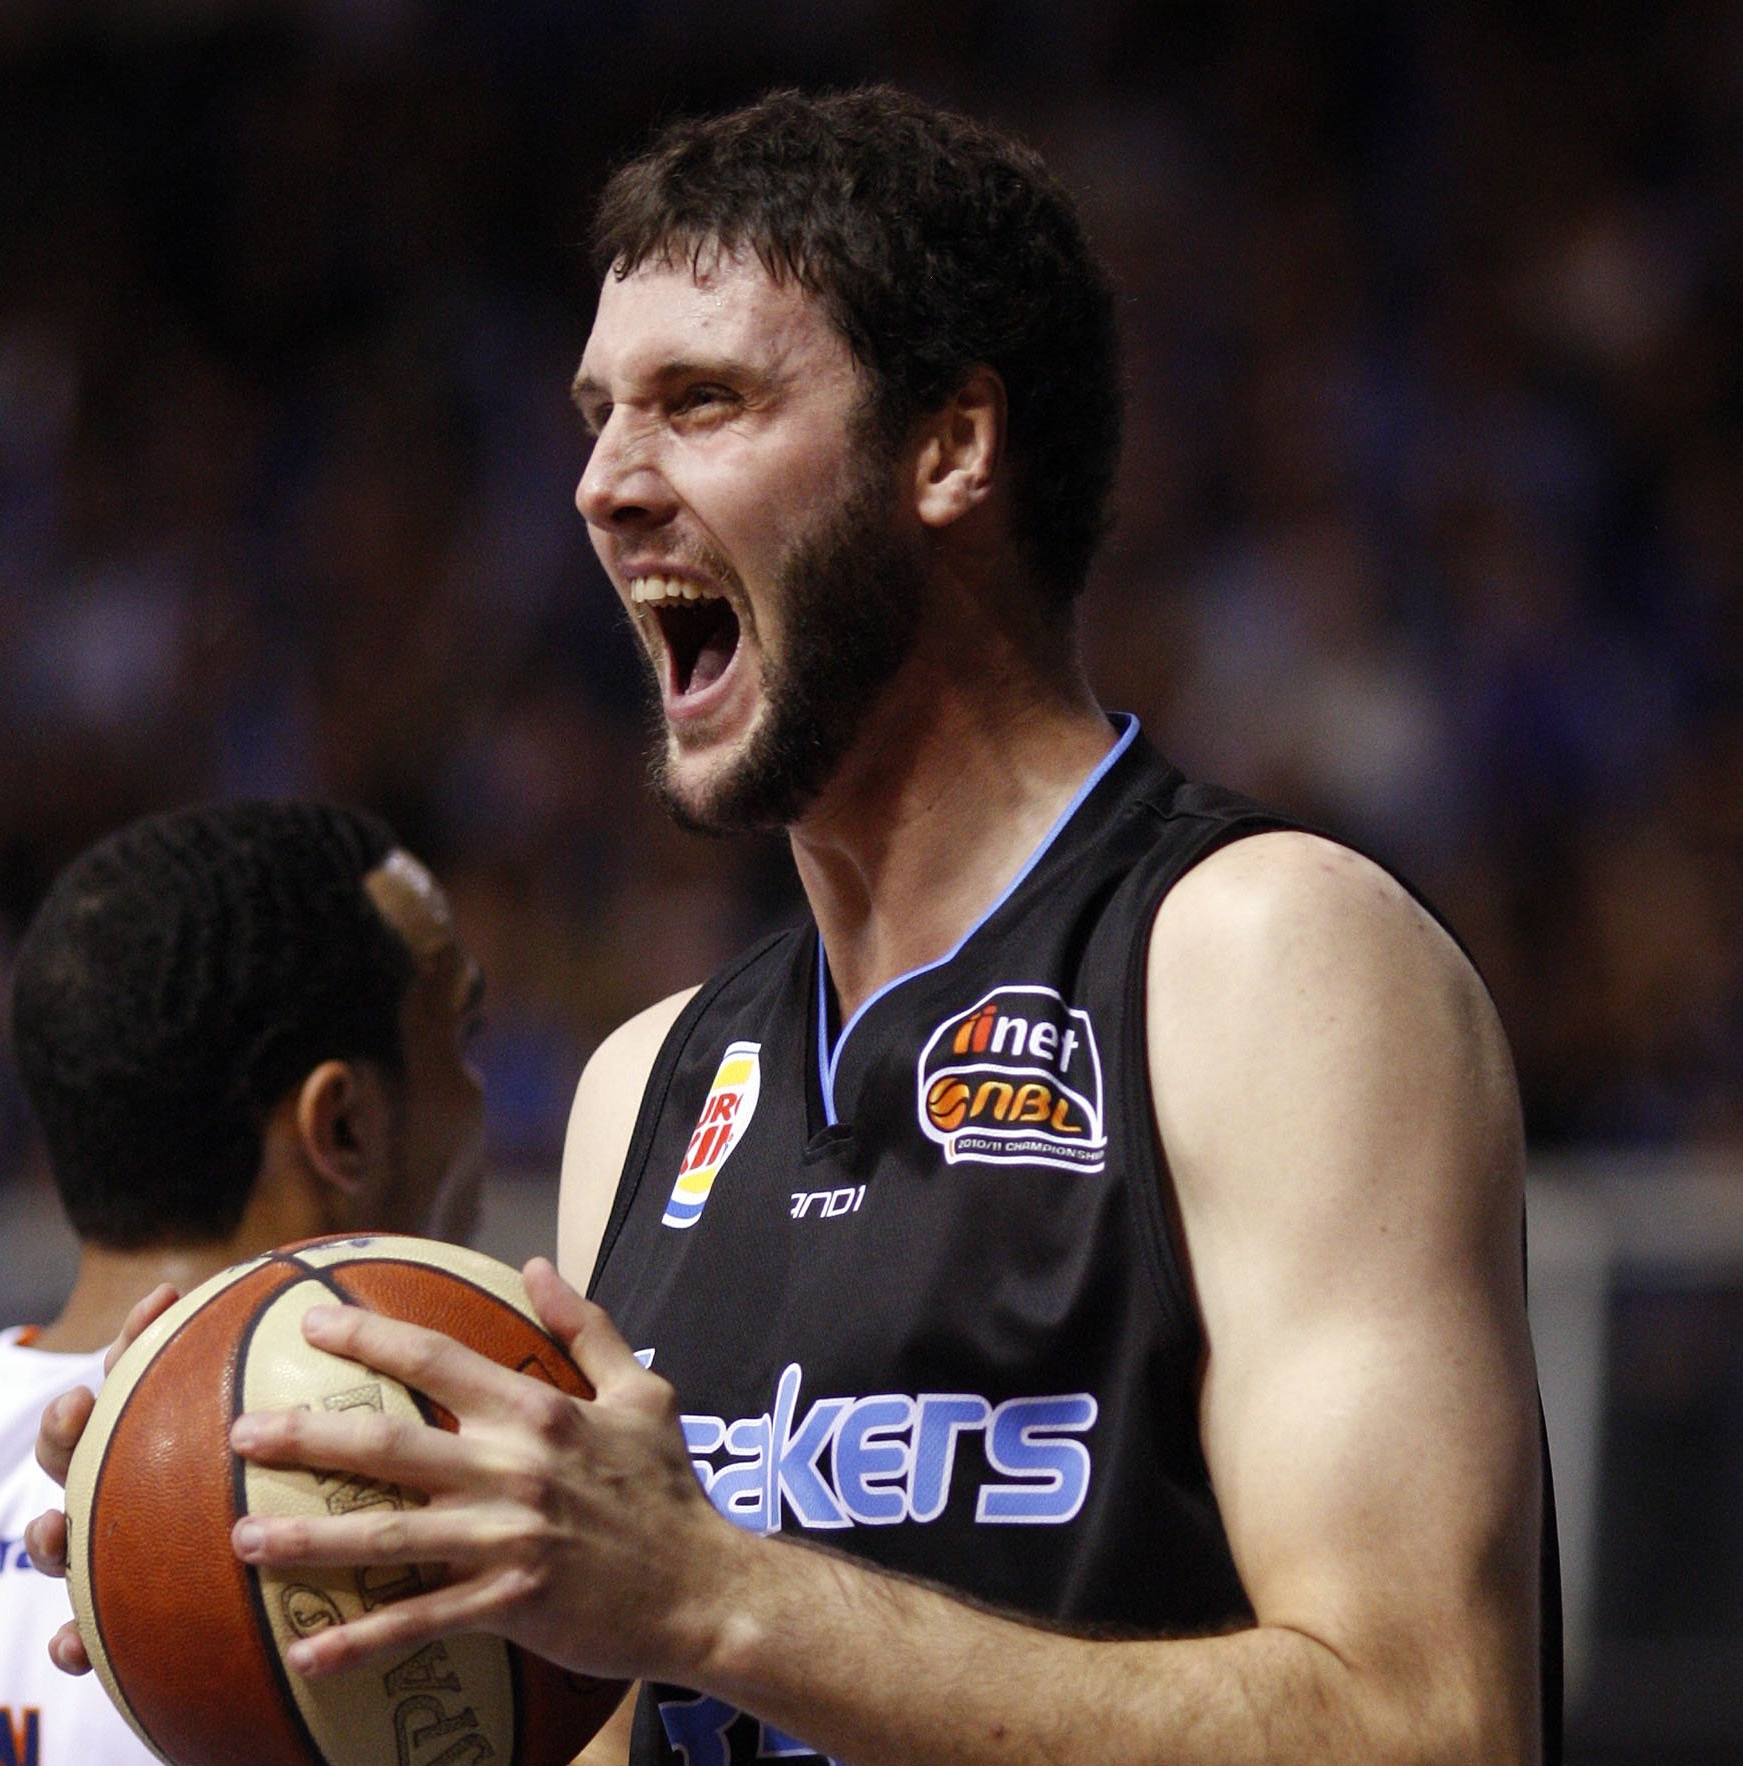 basketball pledger learns from nba champion otago daily times basketball pledger learns from nba champion otago daily times online news